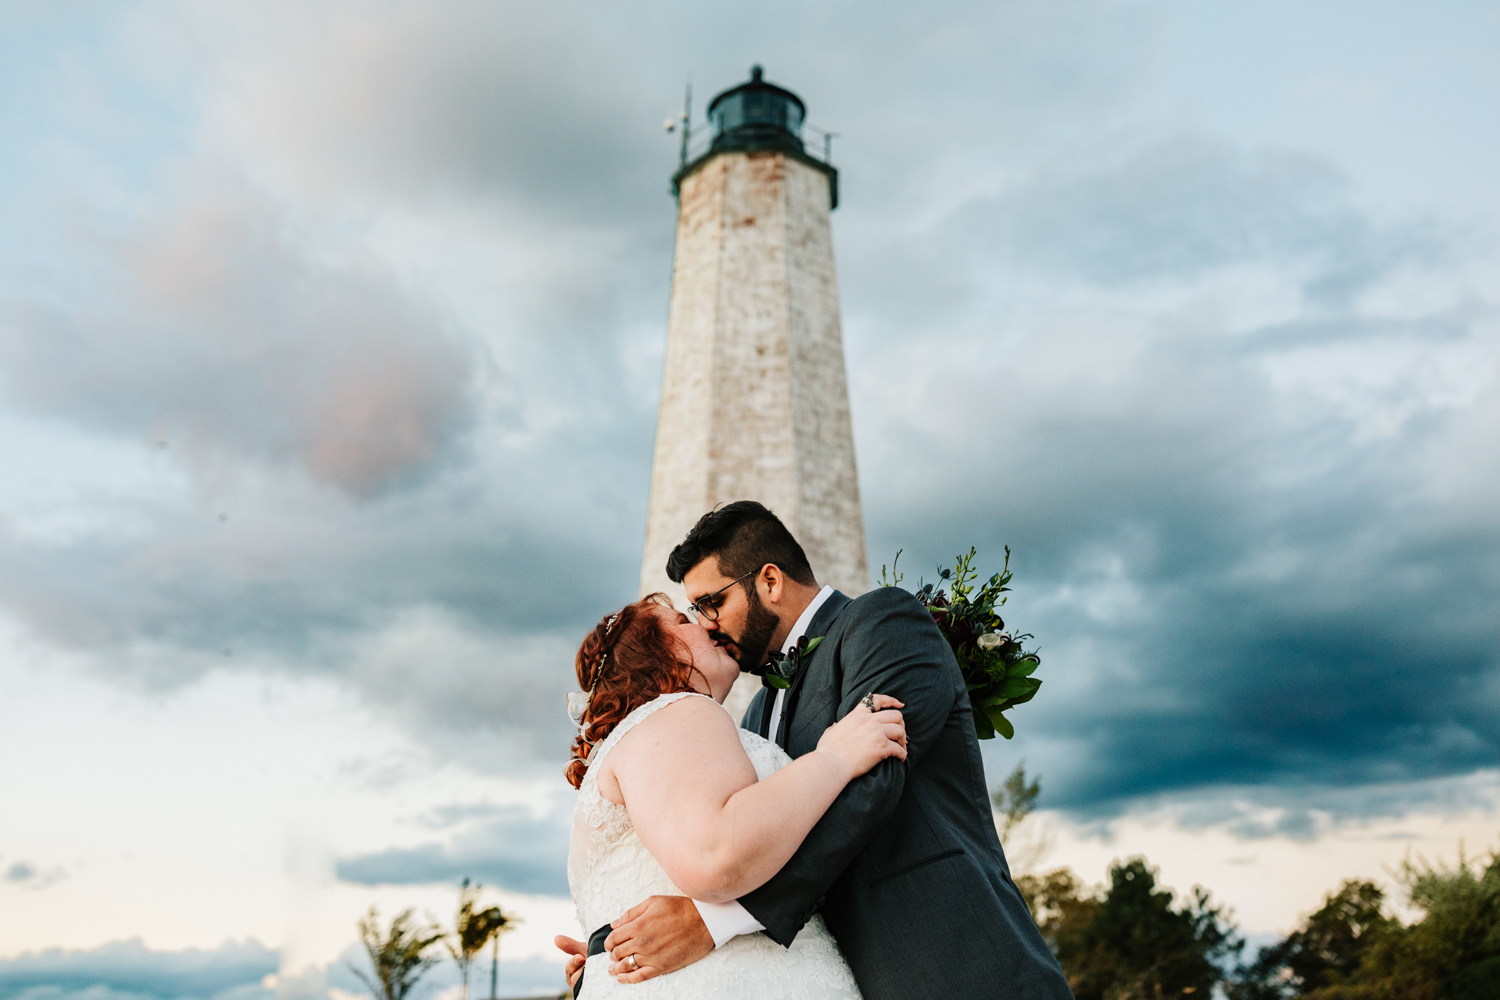 Bride and groom kissing under lighthouse on beach wedding